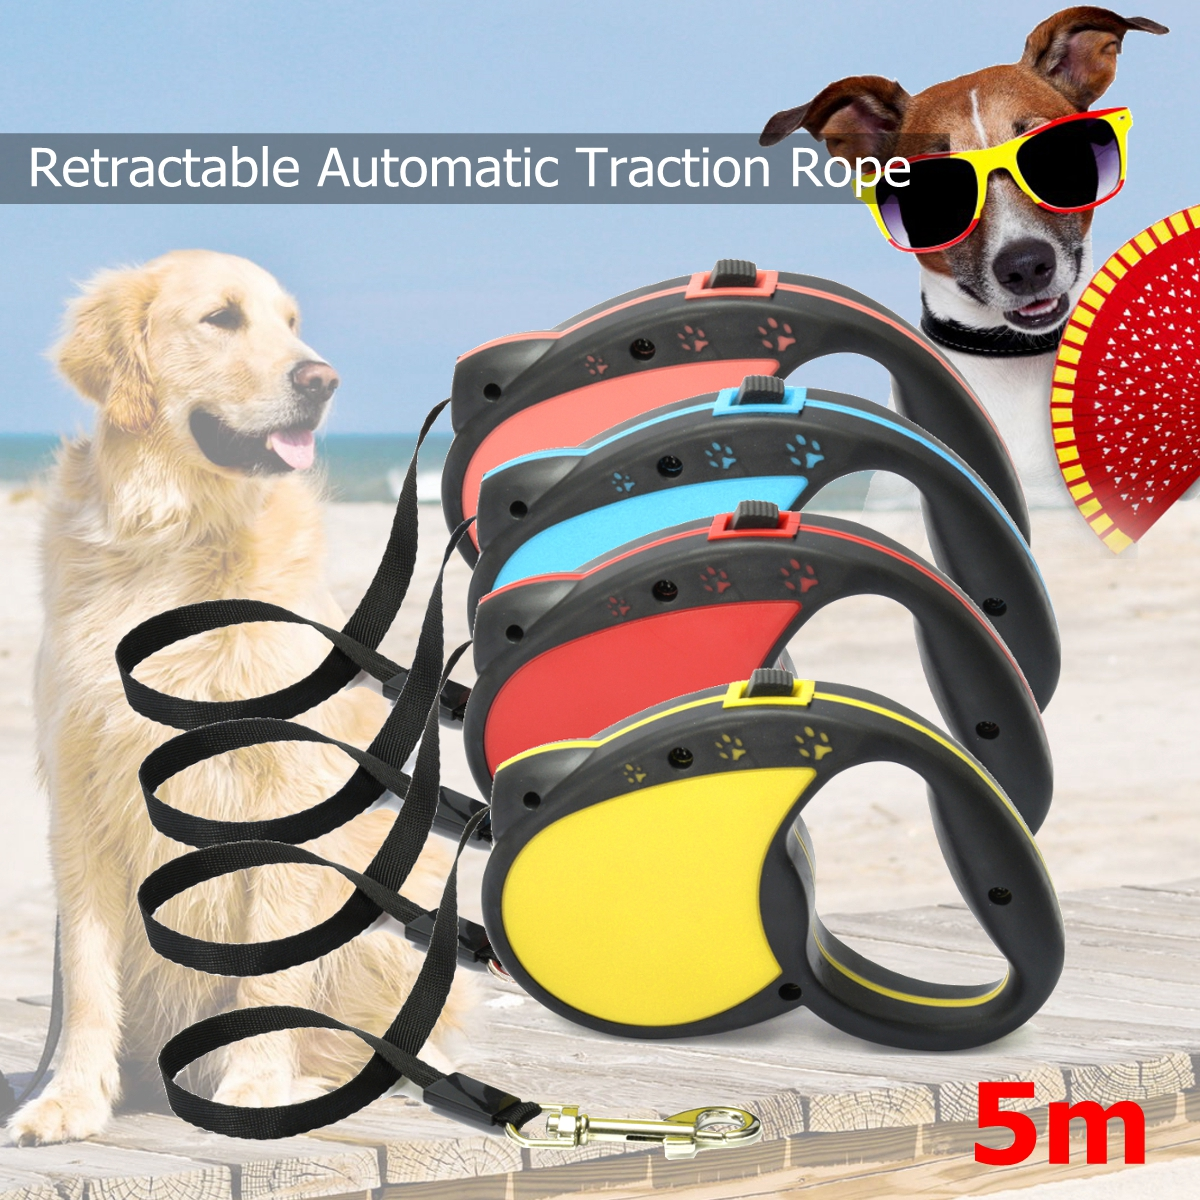 16ft Retractable Dog Leash Extendable Pet Dog Walking Training Leash Nylon Automatic Lead -4 Colors